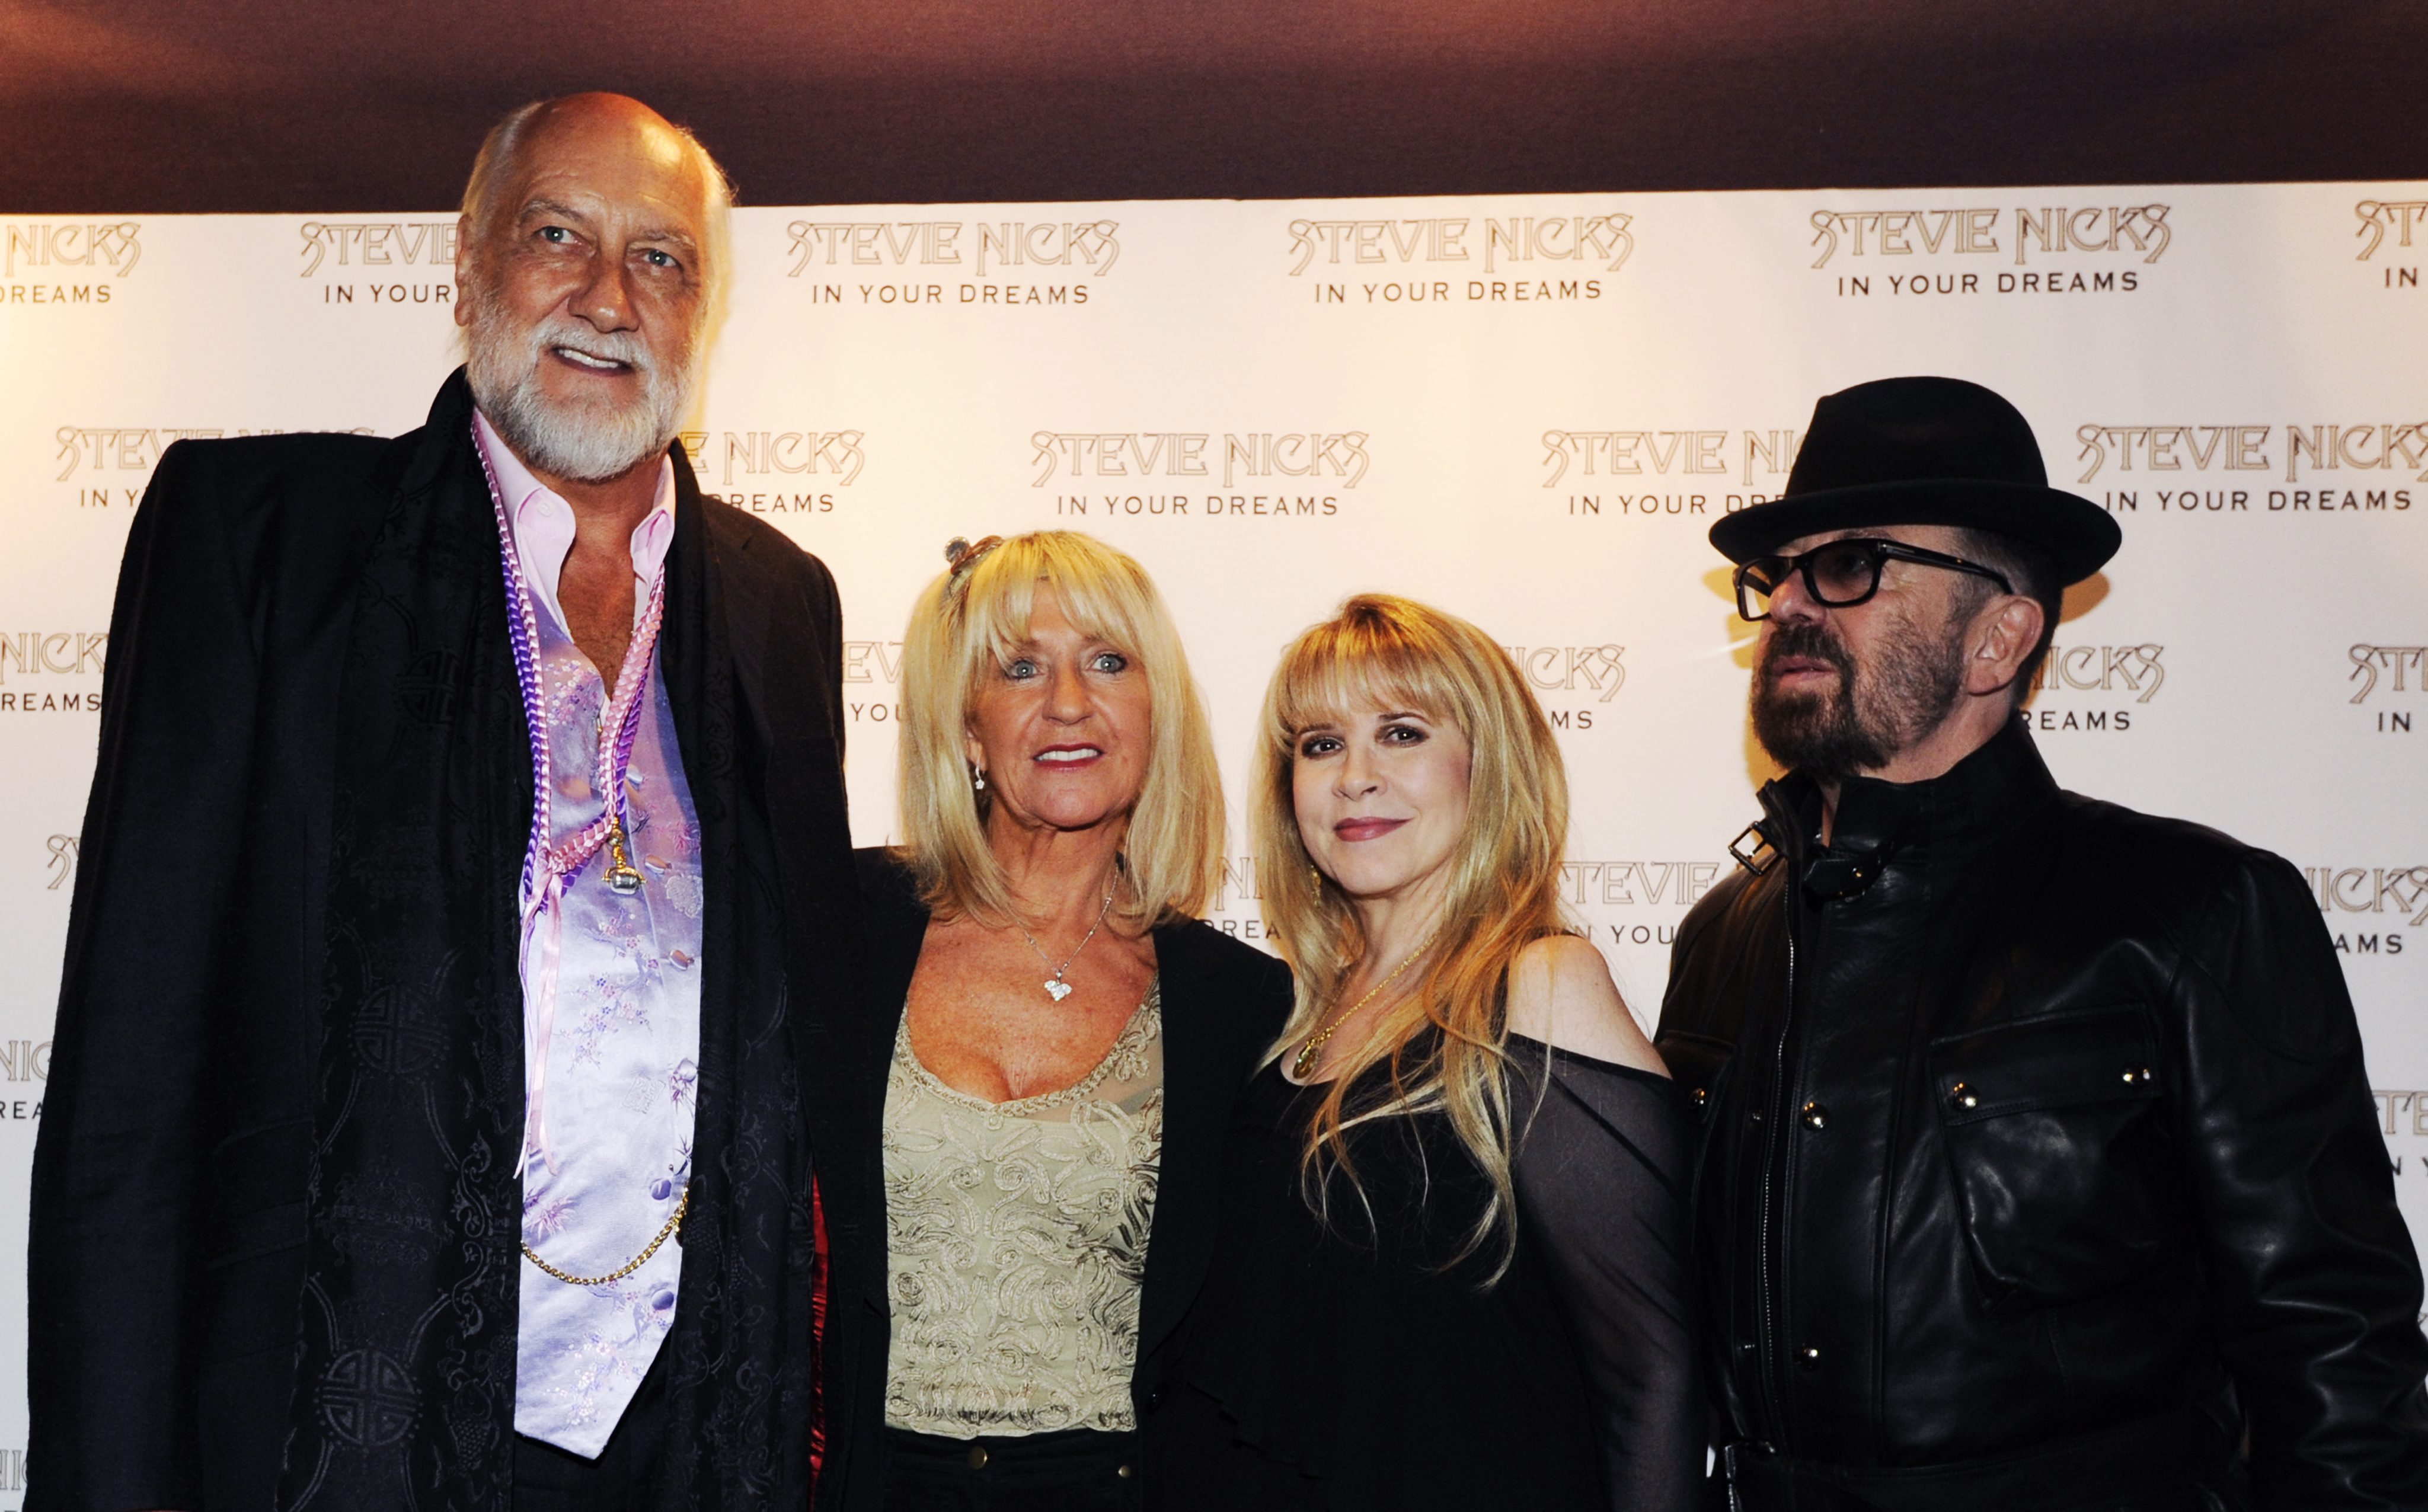 Christine McVie reunited with Fleetwood Mac for London O2 Arena show